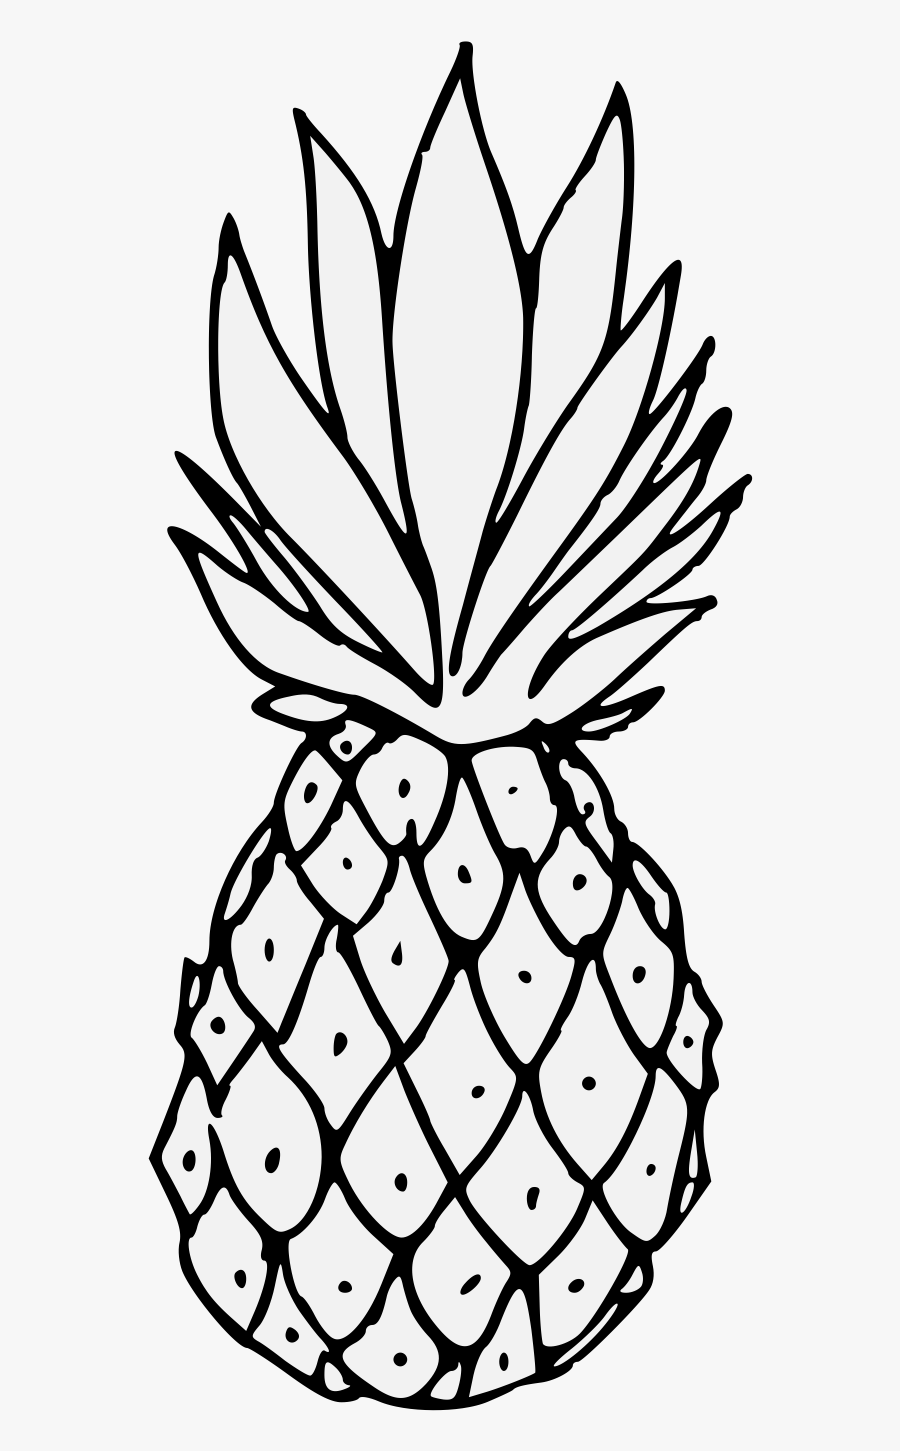 coloring pineapple clipart black and white printable pineapple coloring pages for kids cool2bkids white coloring pineapple black clipart and